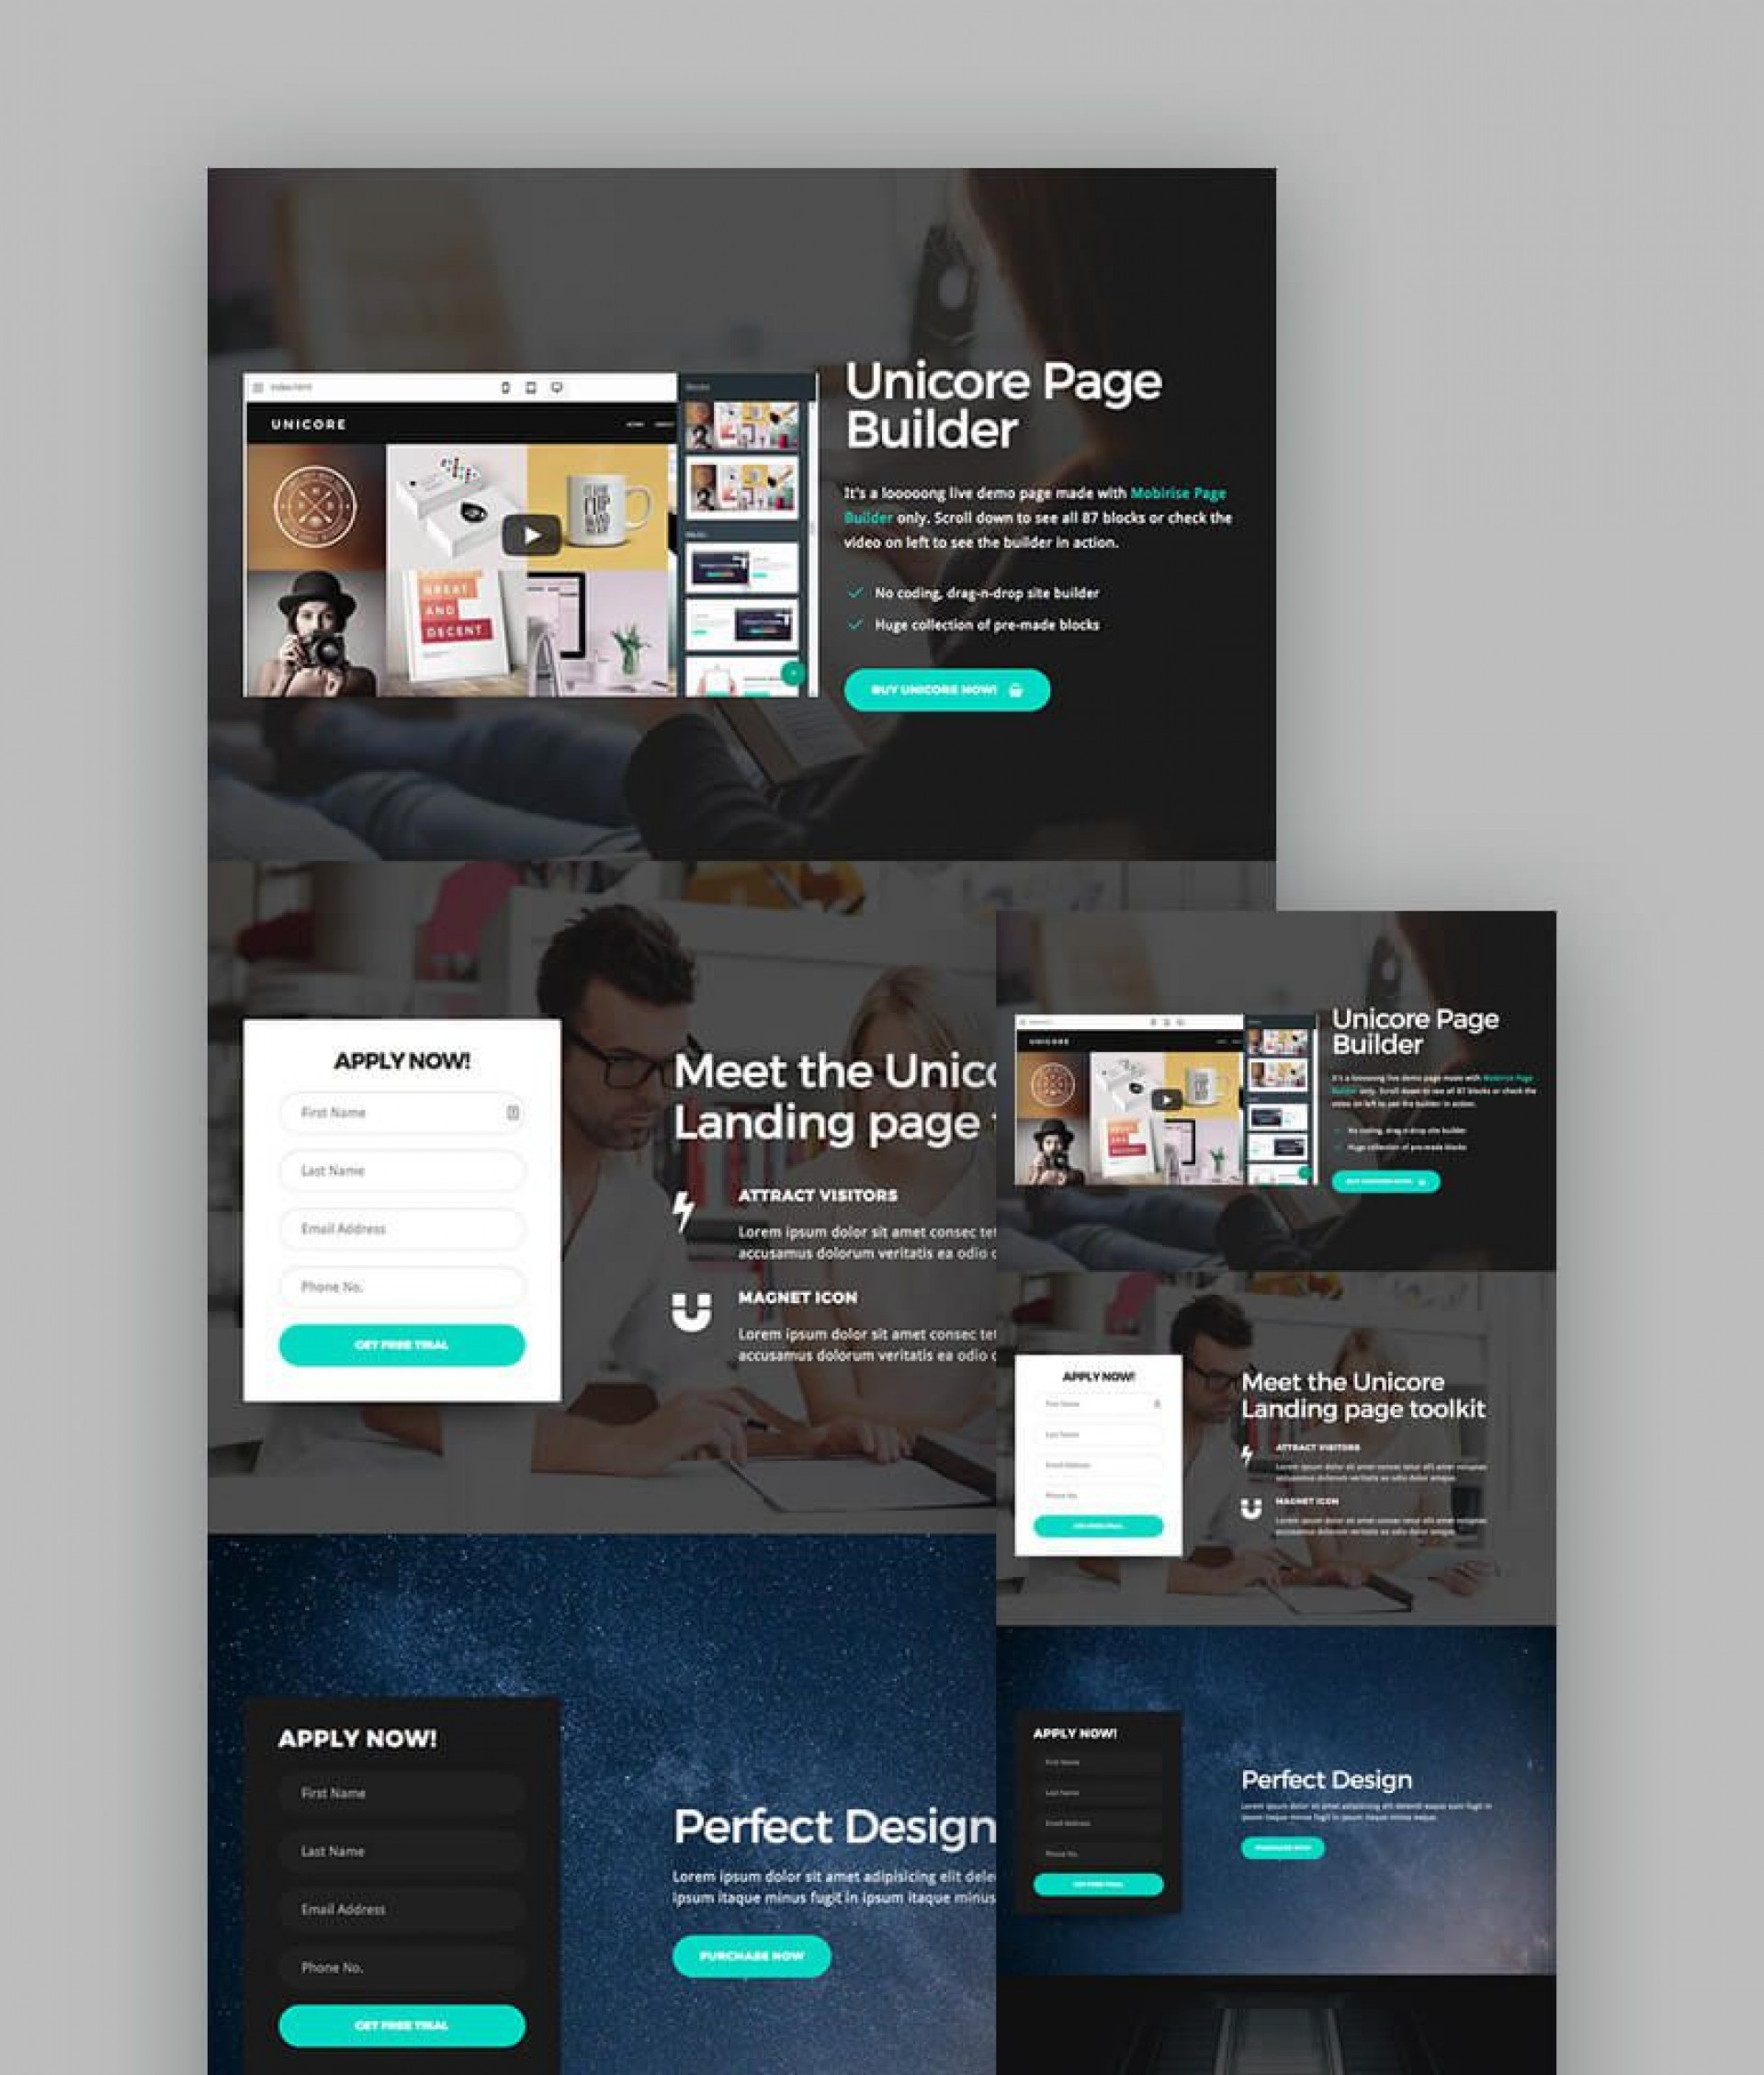 009 Unique Responsive Landing Page Template Design  Templates Html5 Free Download Wordpres Html1920